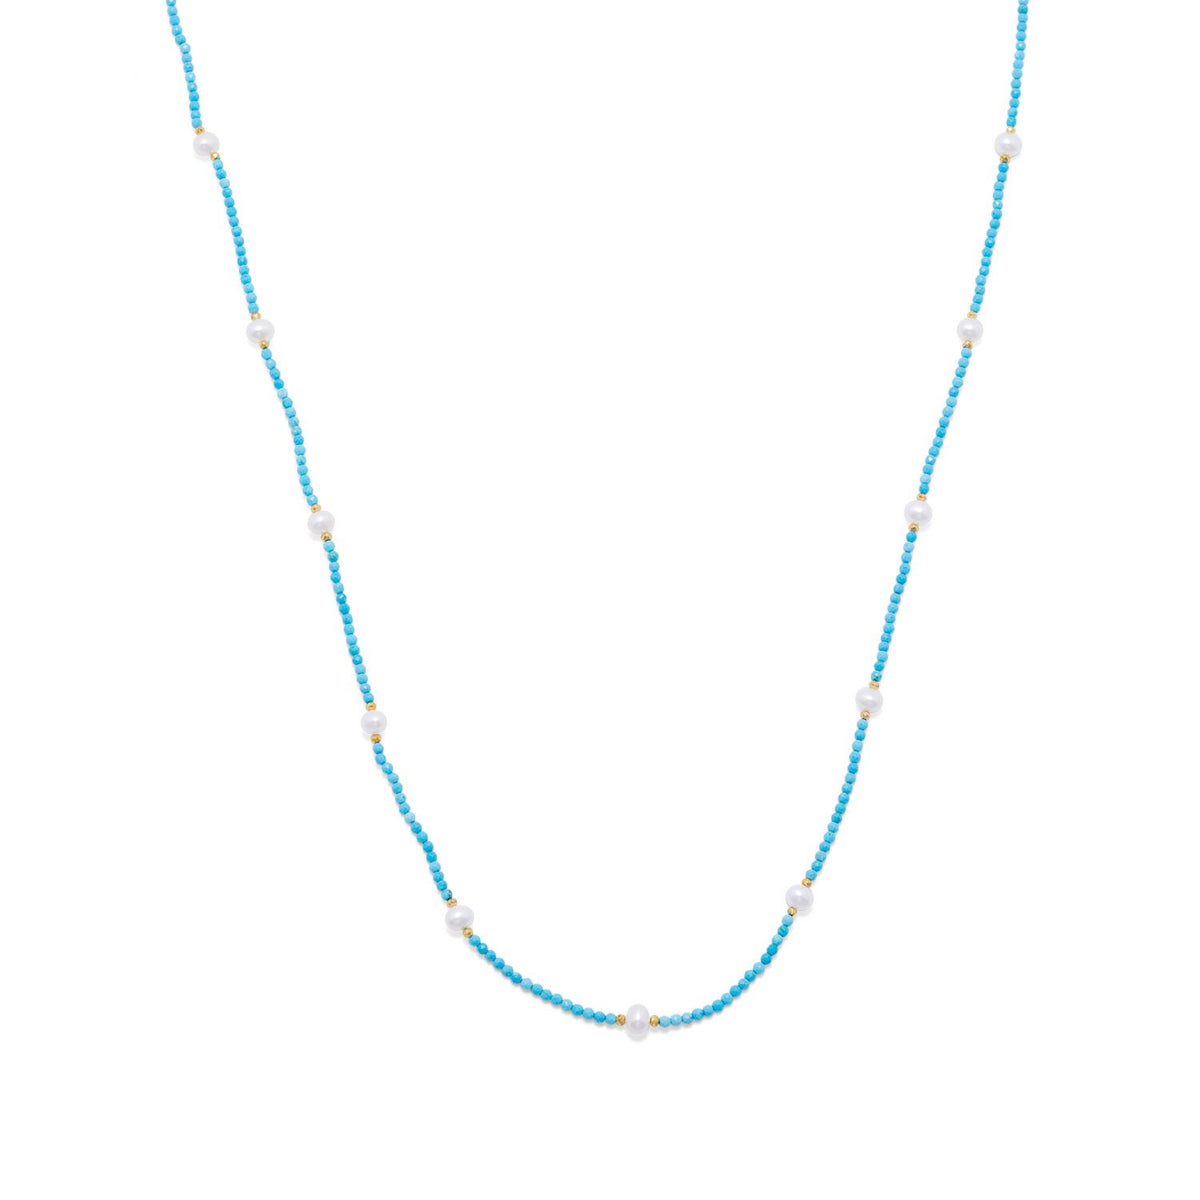 Endless Design Turquoise Magnesite and Cultured Freshwater Pearl Necklace